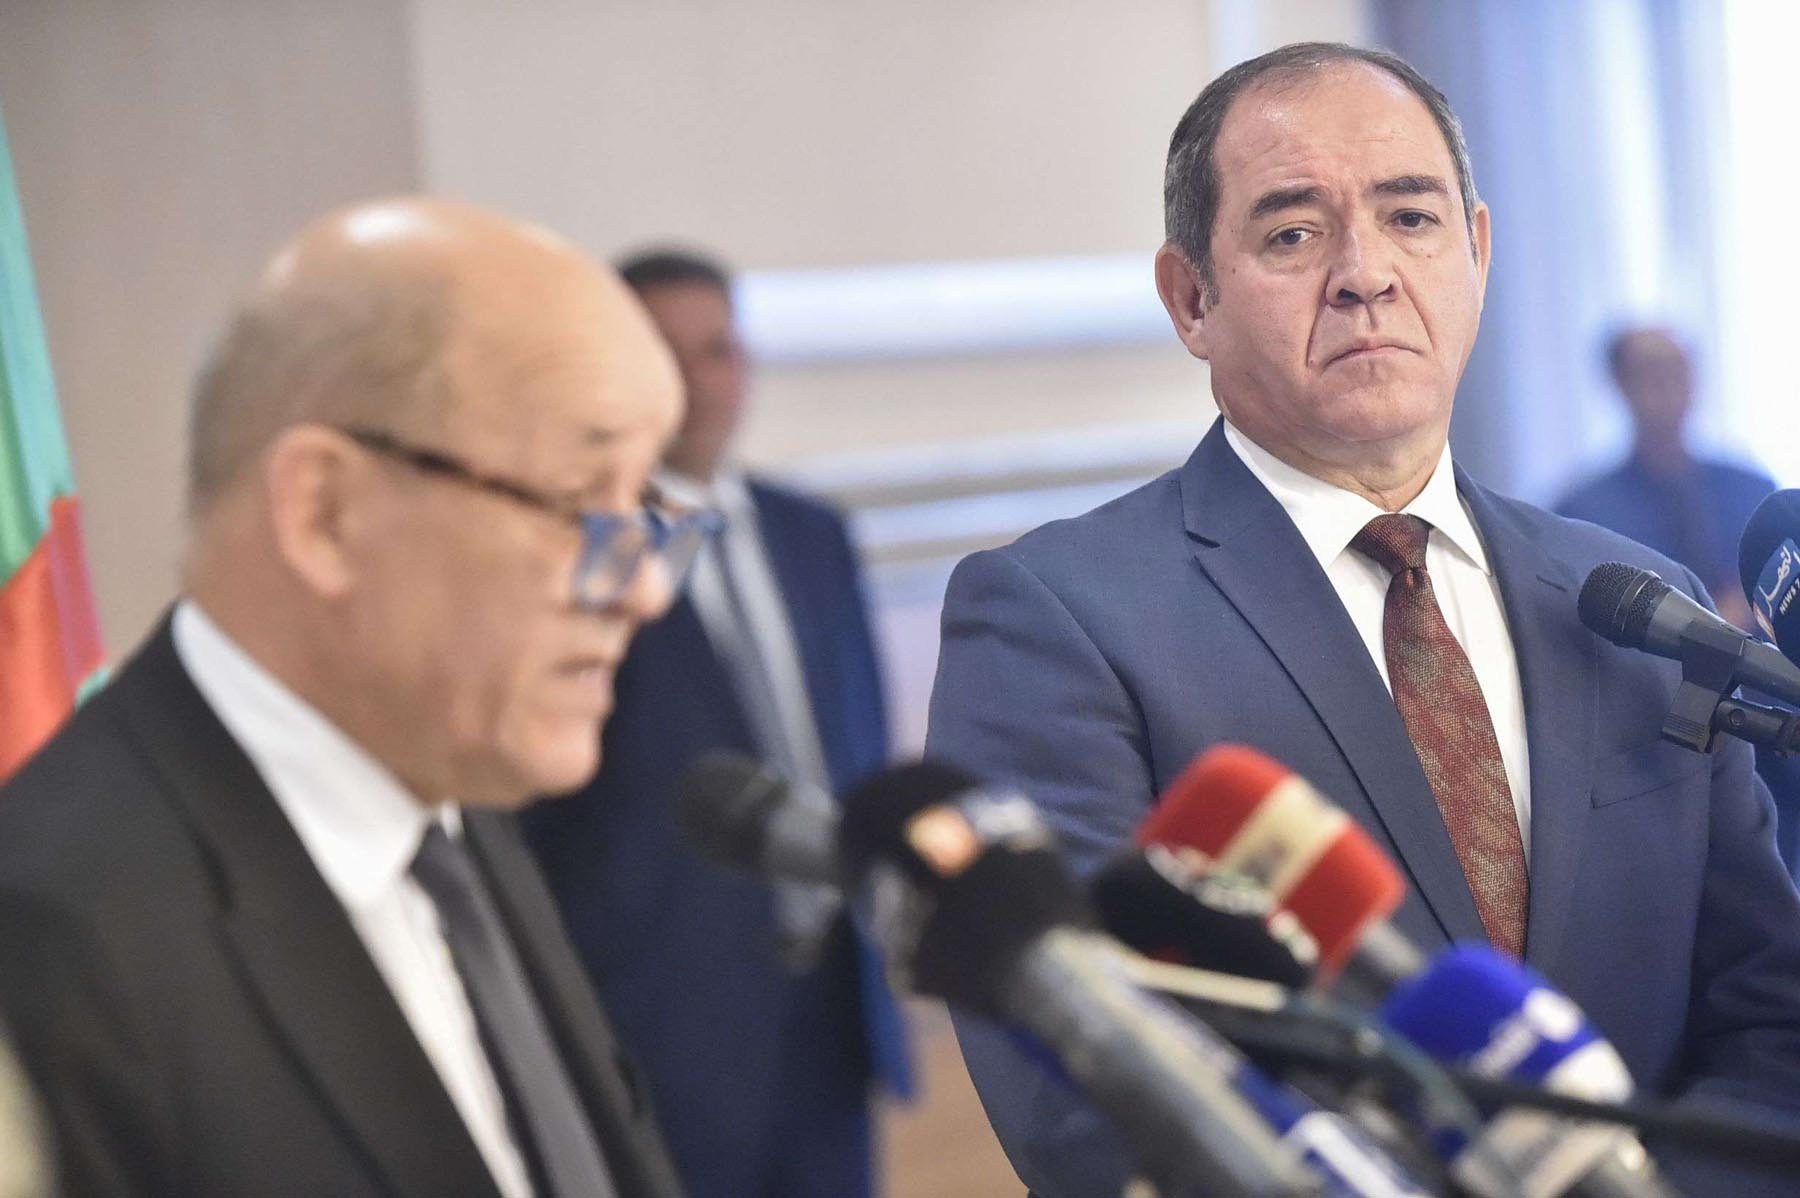 Algerian Foreign Minister Sabri Boukadoum (R) listens to his French counterpart Jean-Yves Le Drian during a joint press conference in the capital Algiers, last January. (AFP)